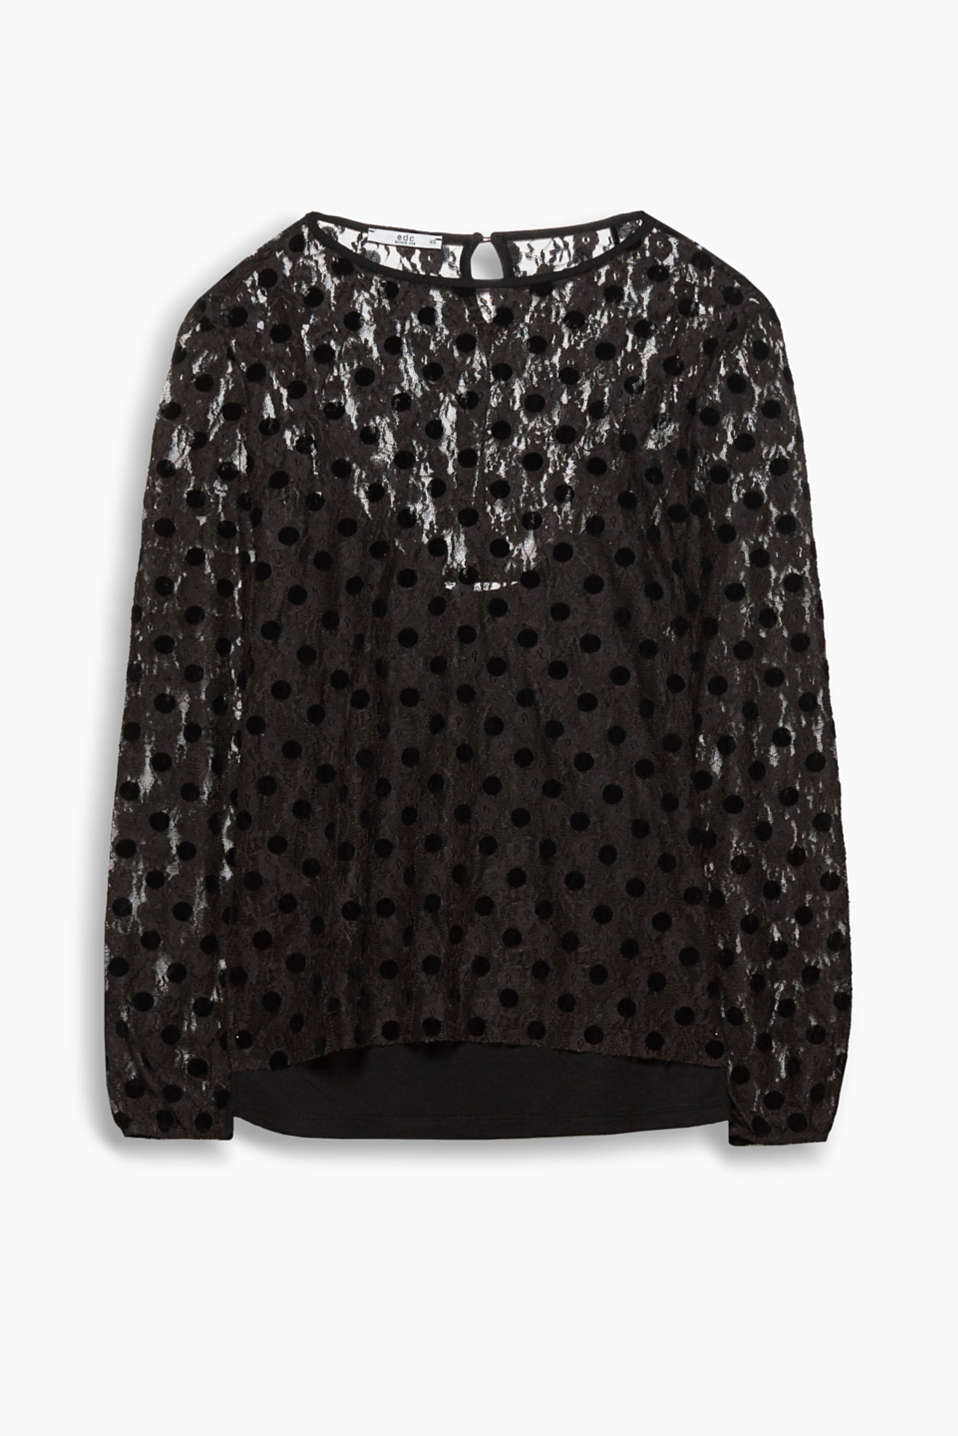 Delicate lace and a velvety polka dot print turn this long sleeve blouse with an integrated top into a party style!